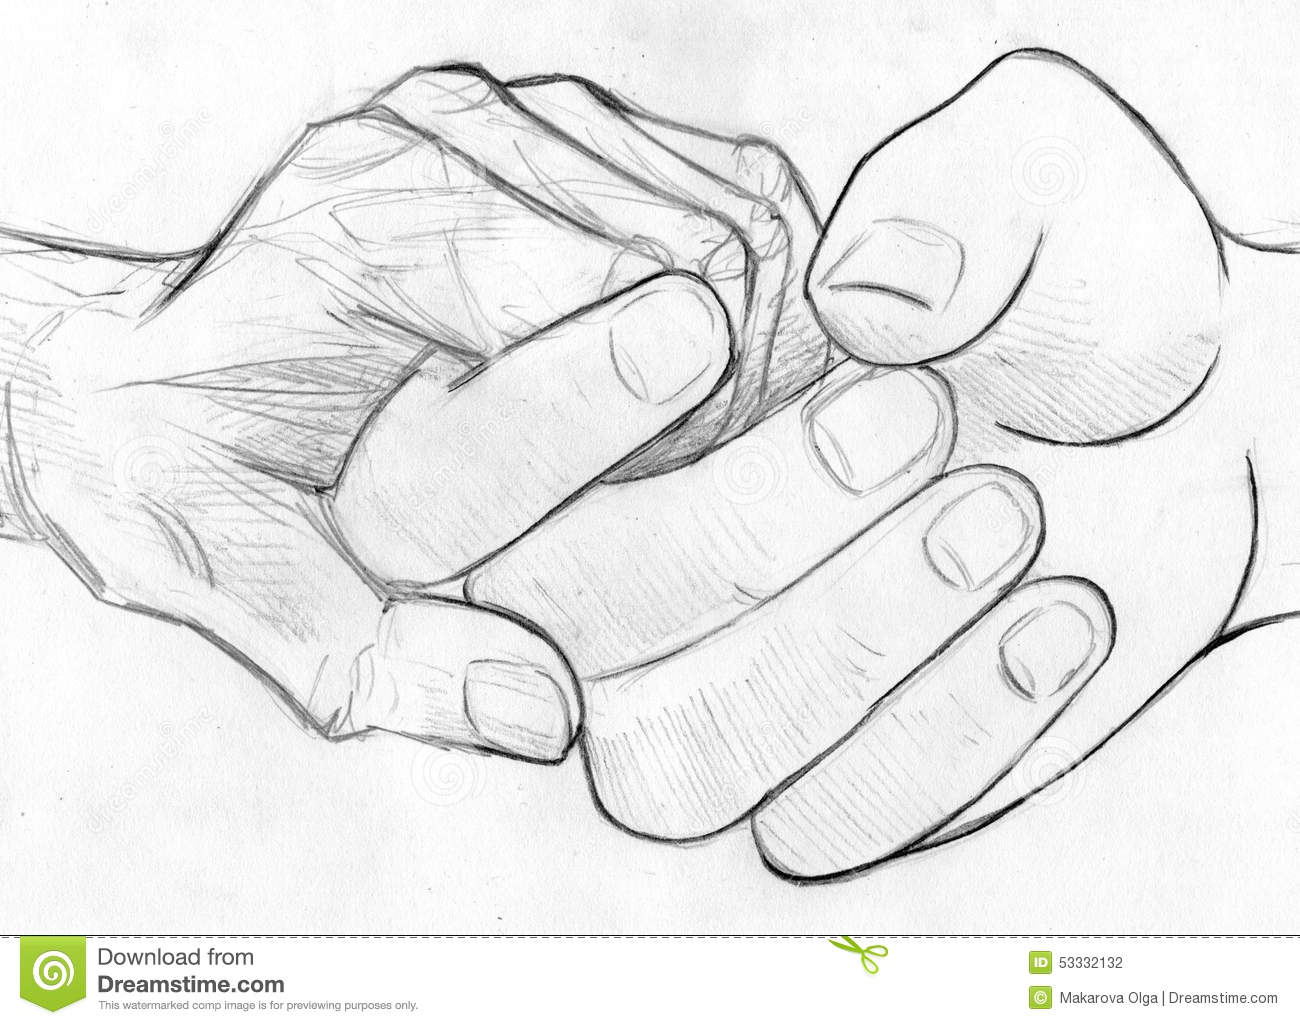 1300x1025 Hands Together Pencil Drawing Pencil Sketch Of Boy And Girl